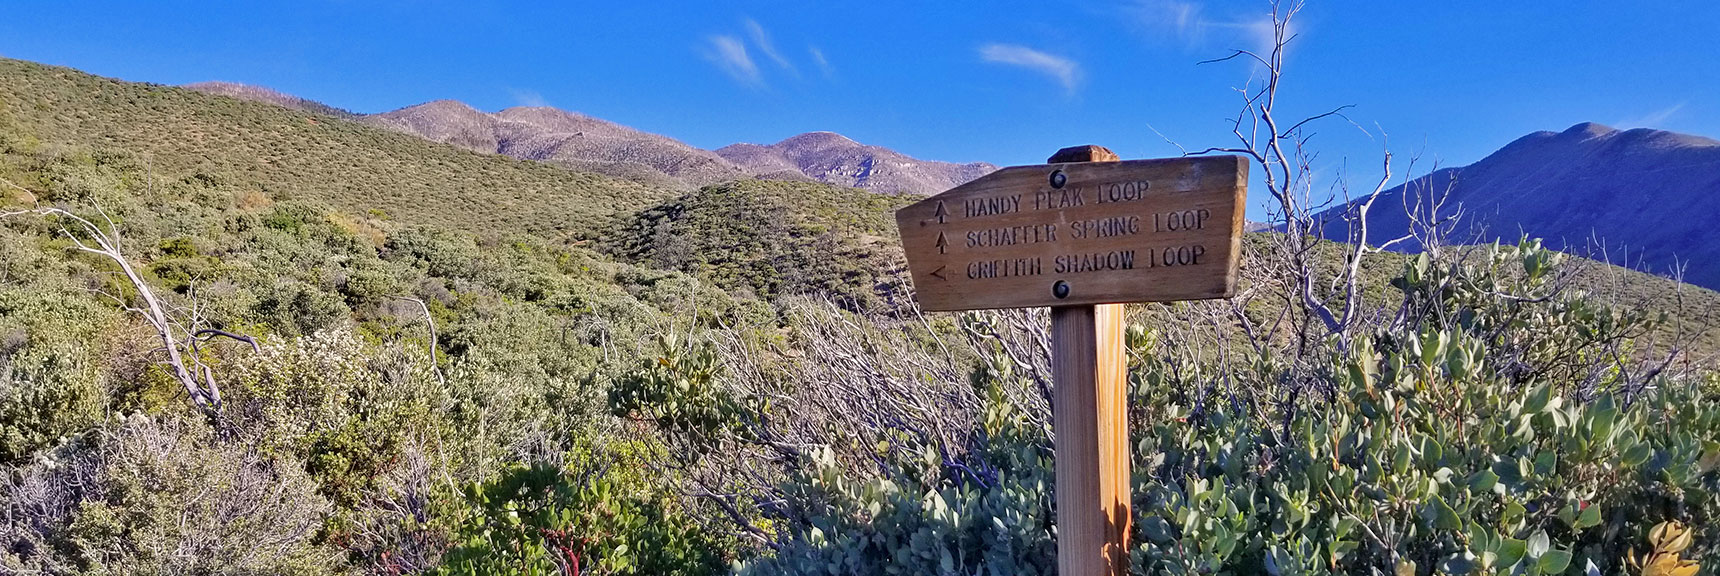 Handy Peak Loop and Schaffer Spring Loop Trails Split Off   Griffith Peak from Lovell Canyon Trailhead, Nevada, 009